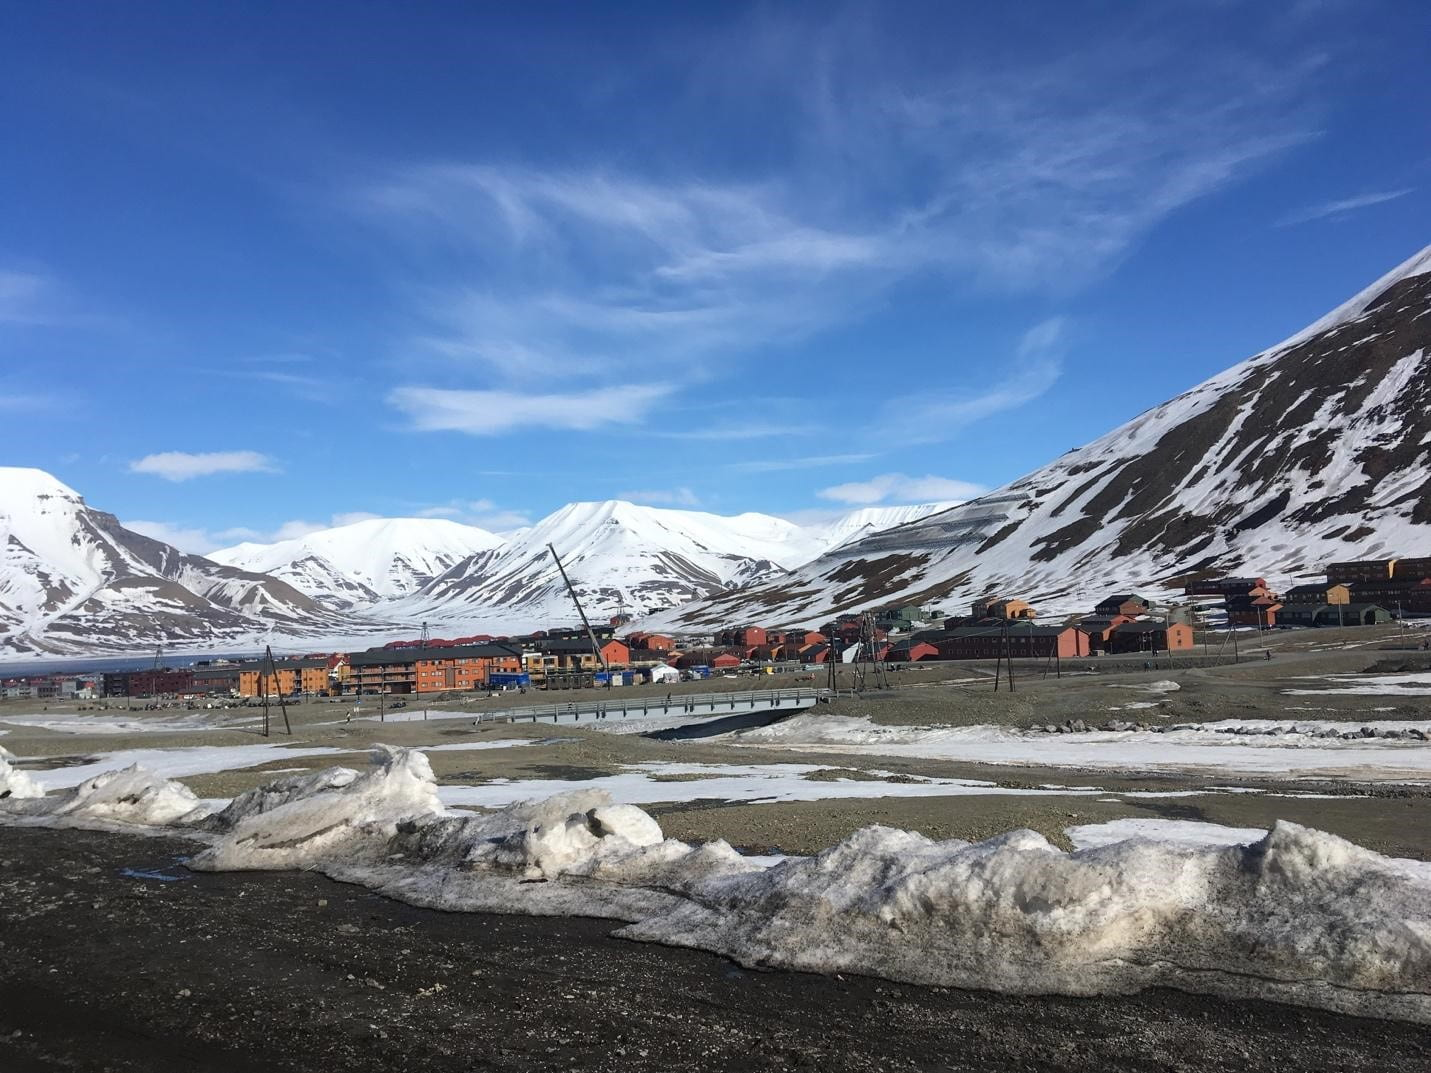 Snowy mountains in background, blue sky, orange buildings in distance, melting snow in foreground